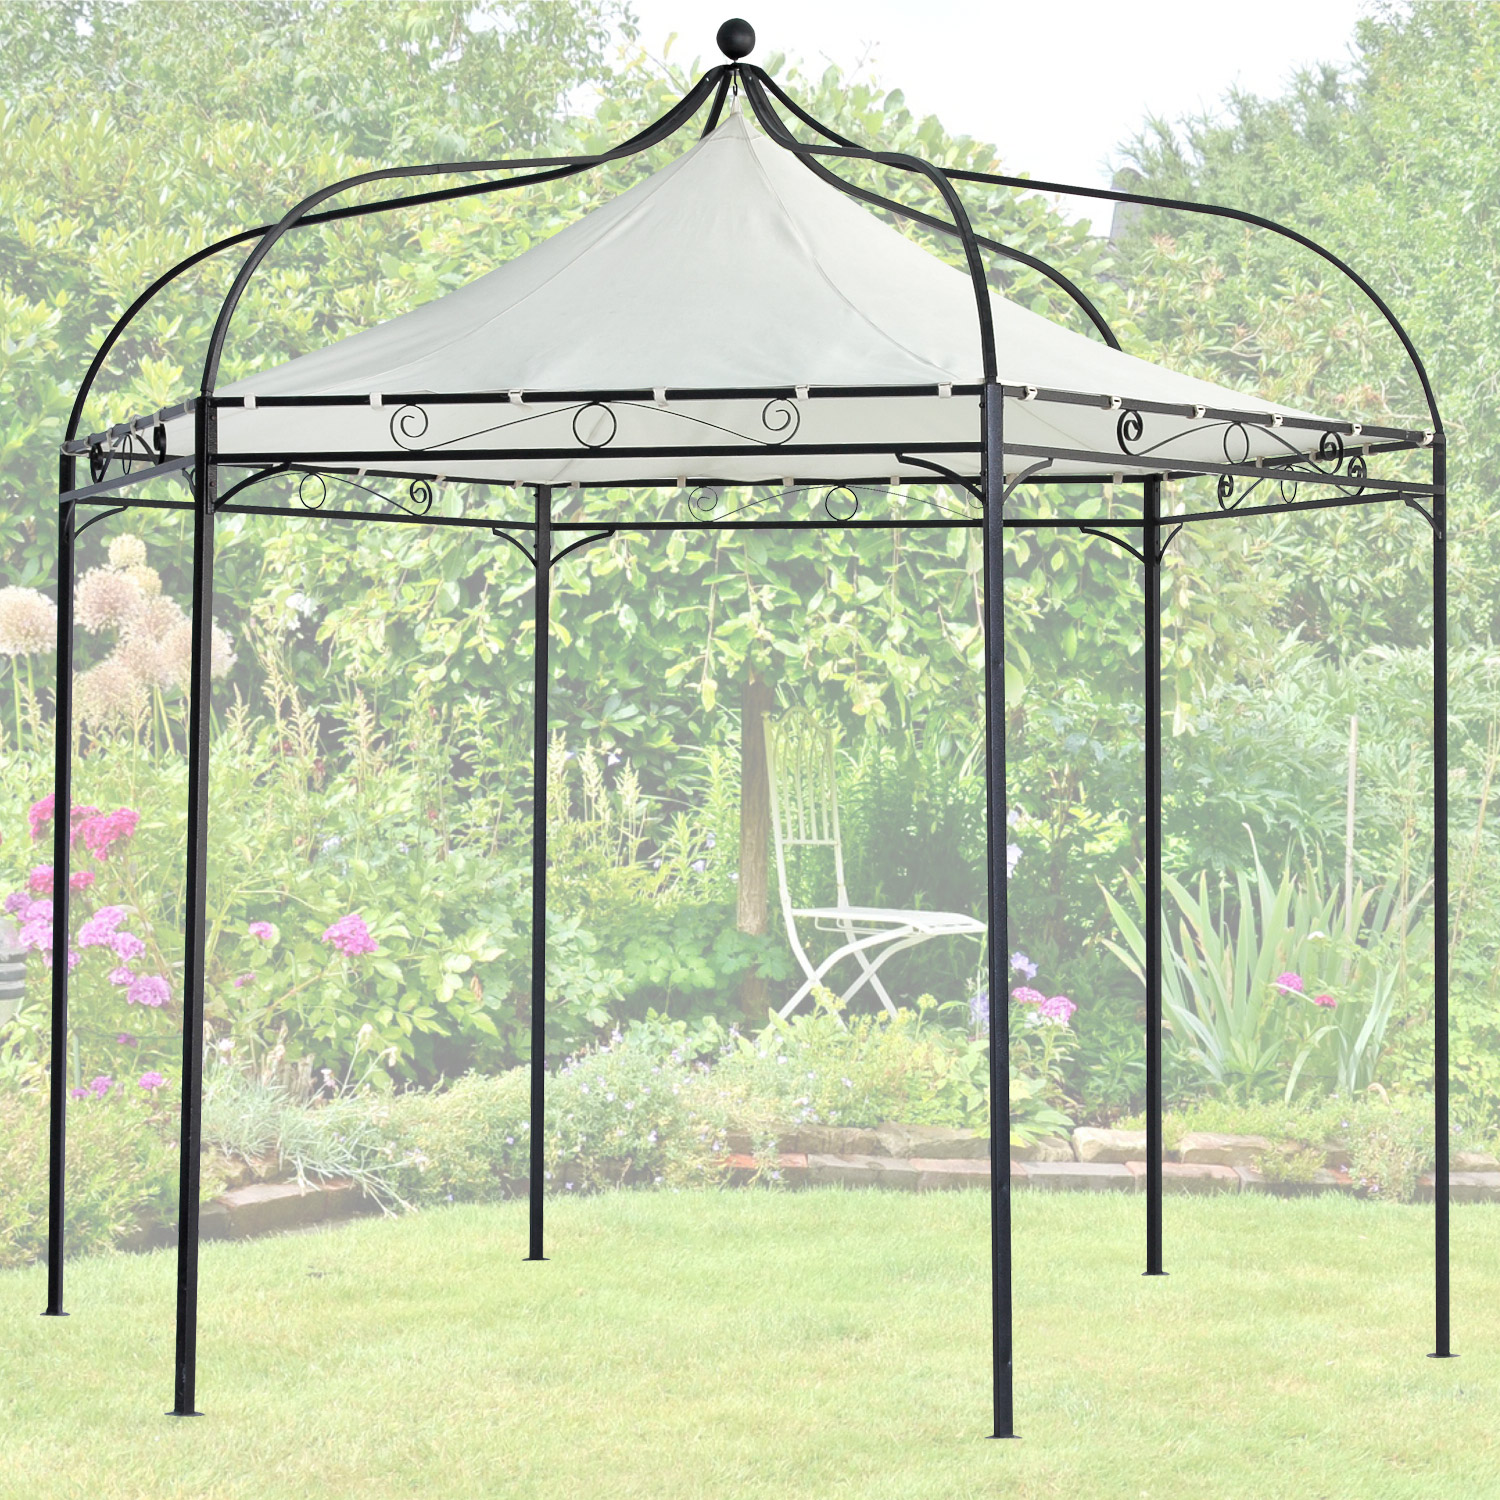 pavillon 320x280 cm metall gartenpavillon festzelt dach zelt garten wasserfest ebay. Black Bedroom Furniture Sets. Home Design Ideas